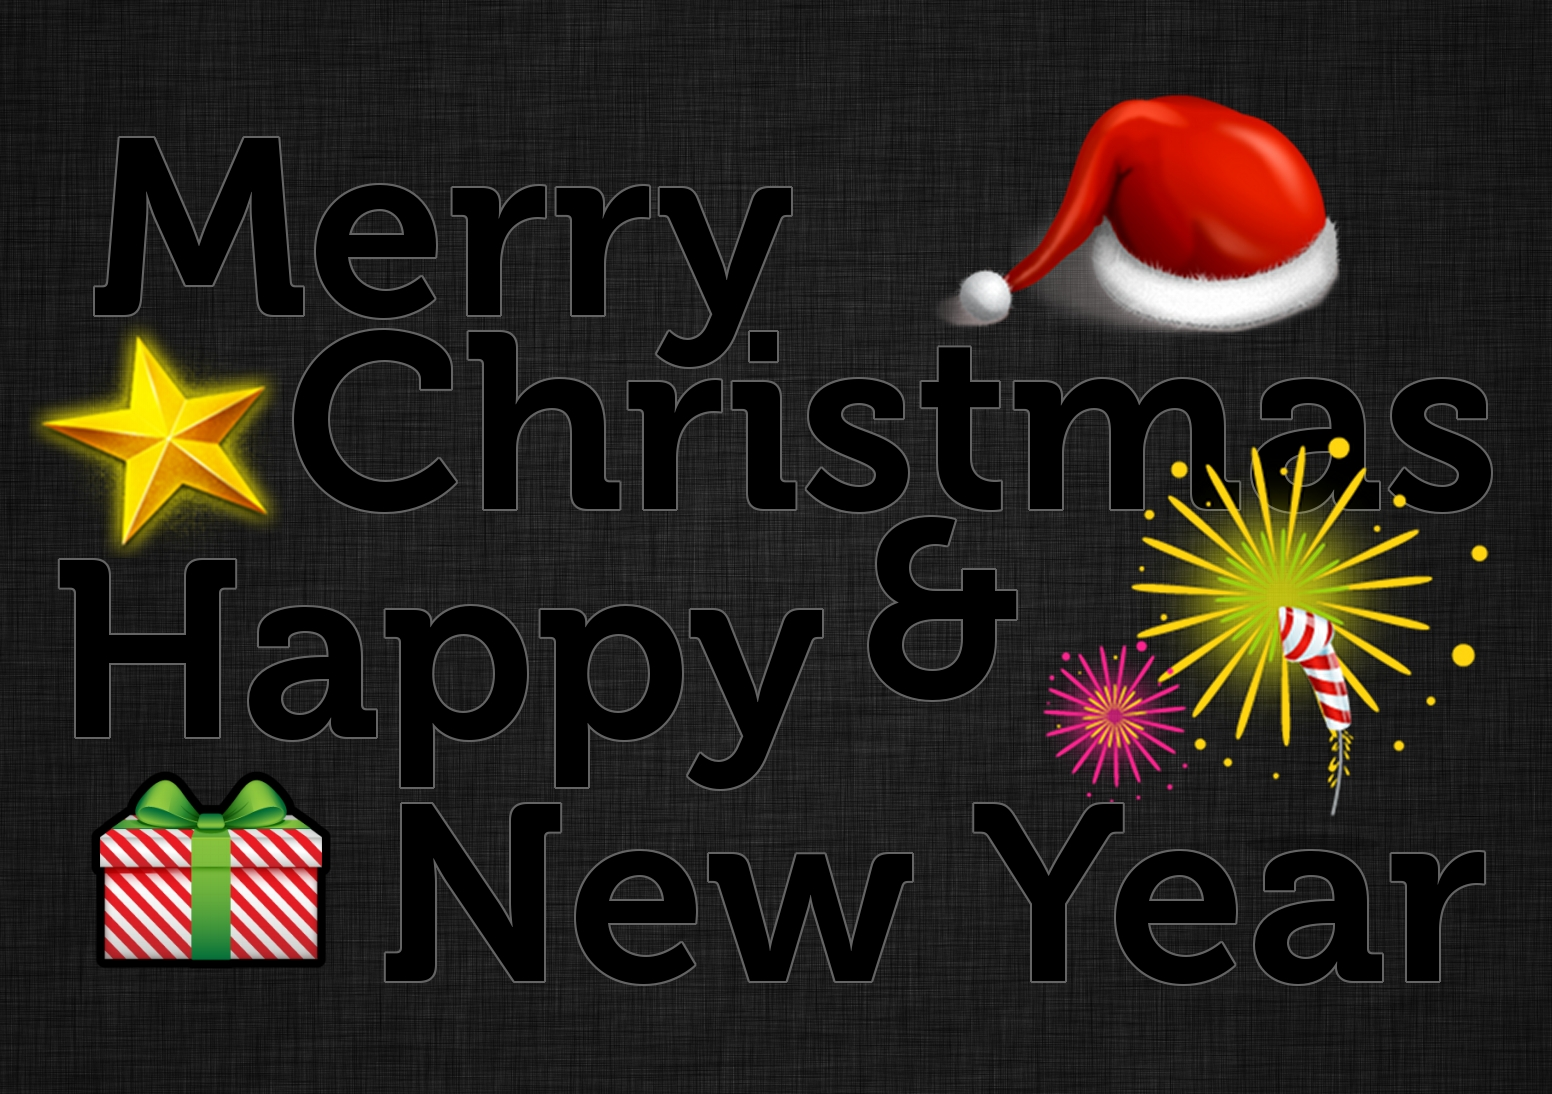 Merry Christmas & Happy New Year Wallpaper in GIMP | Scott ...